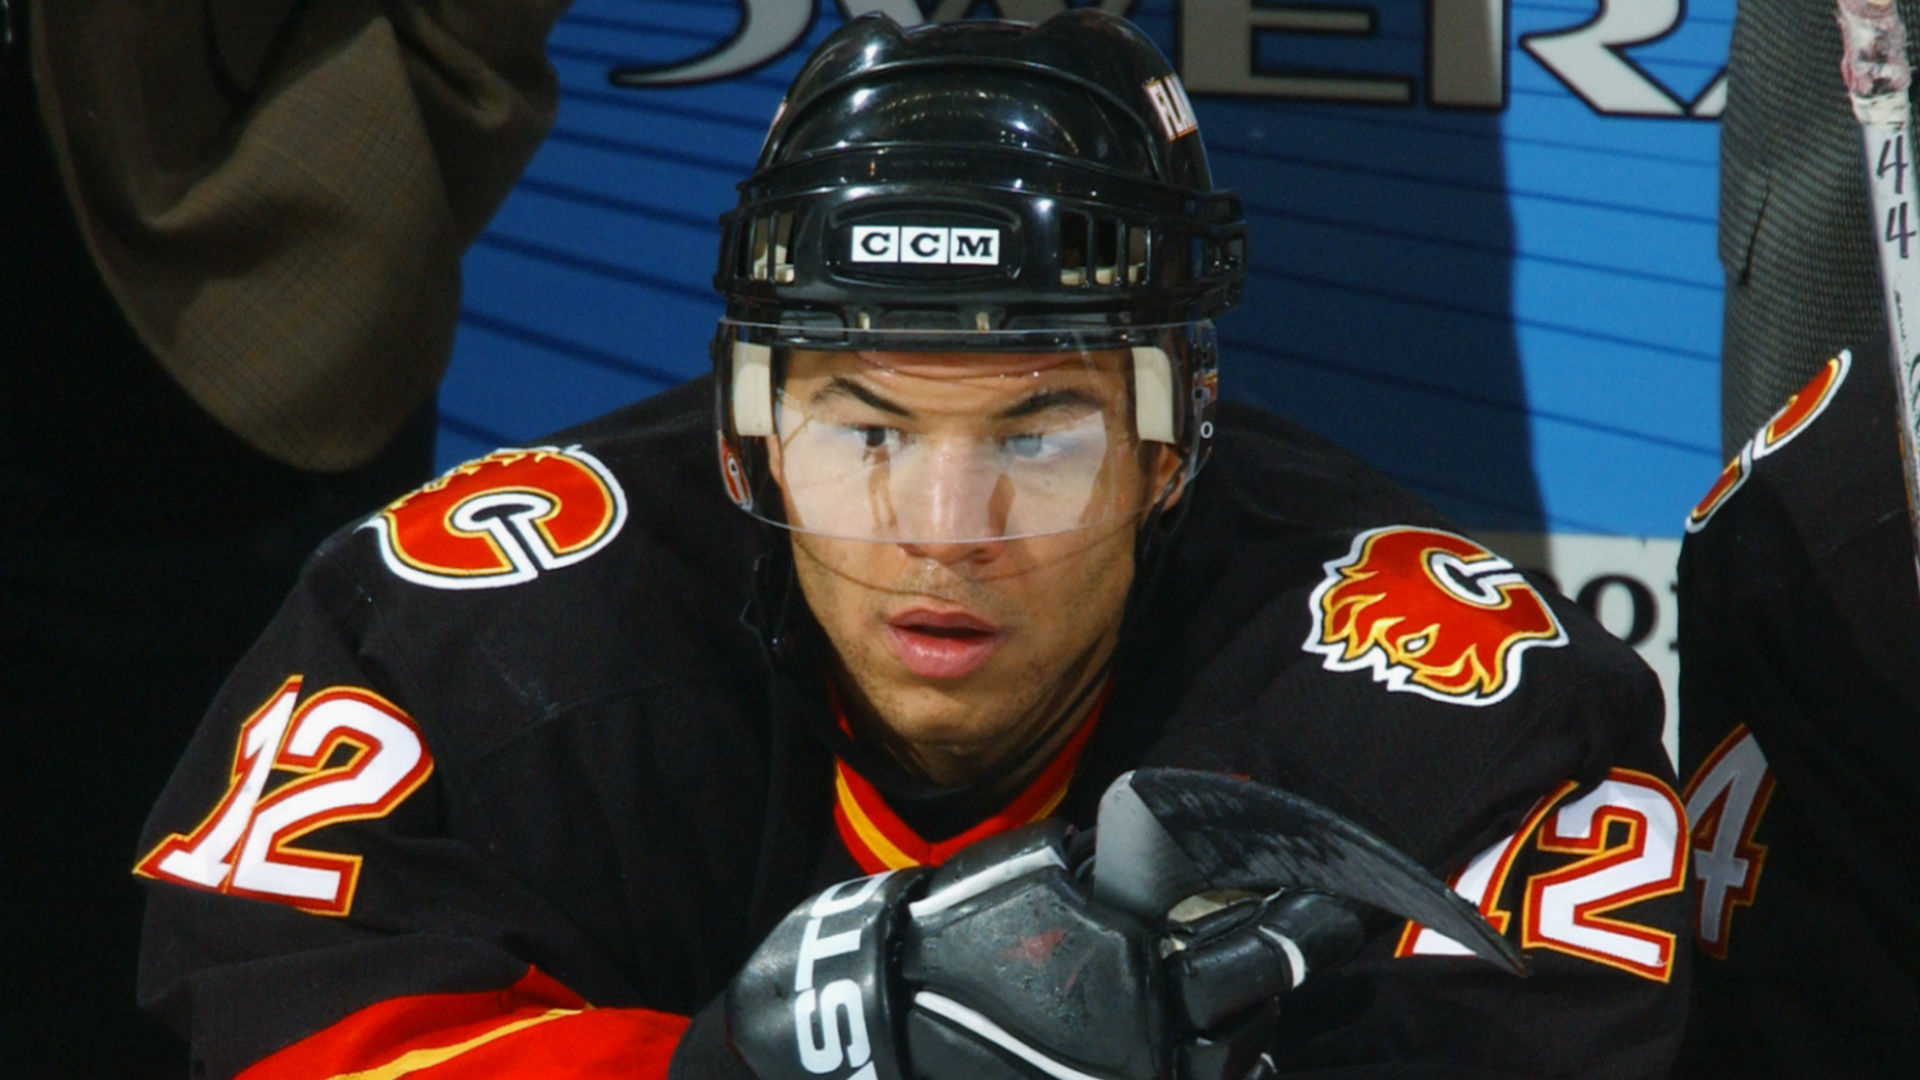 Jarome Iginla, Kevin Lowe to enter Hockey Hall of Fame as members of 2020 class